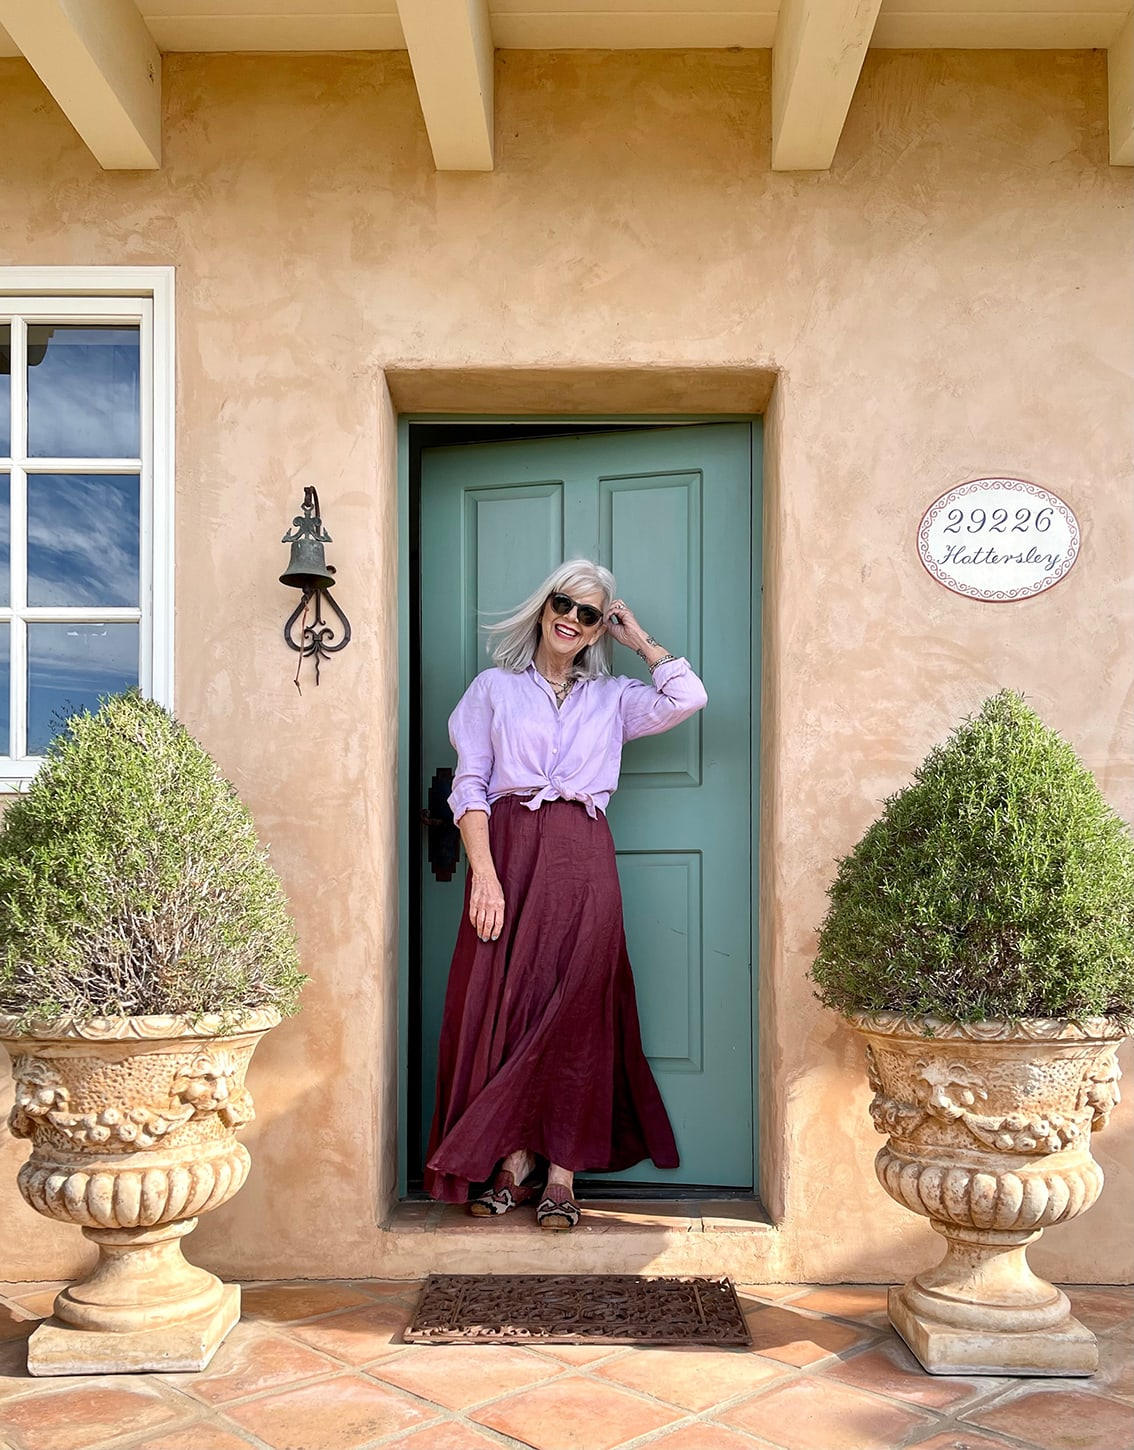 cindy hattersley in cp shades and artemis mules